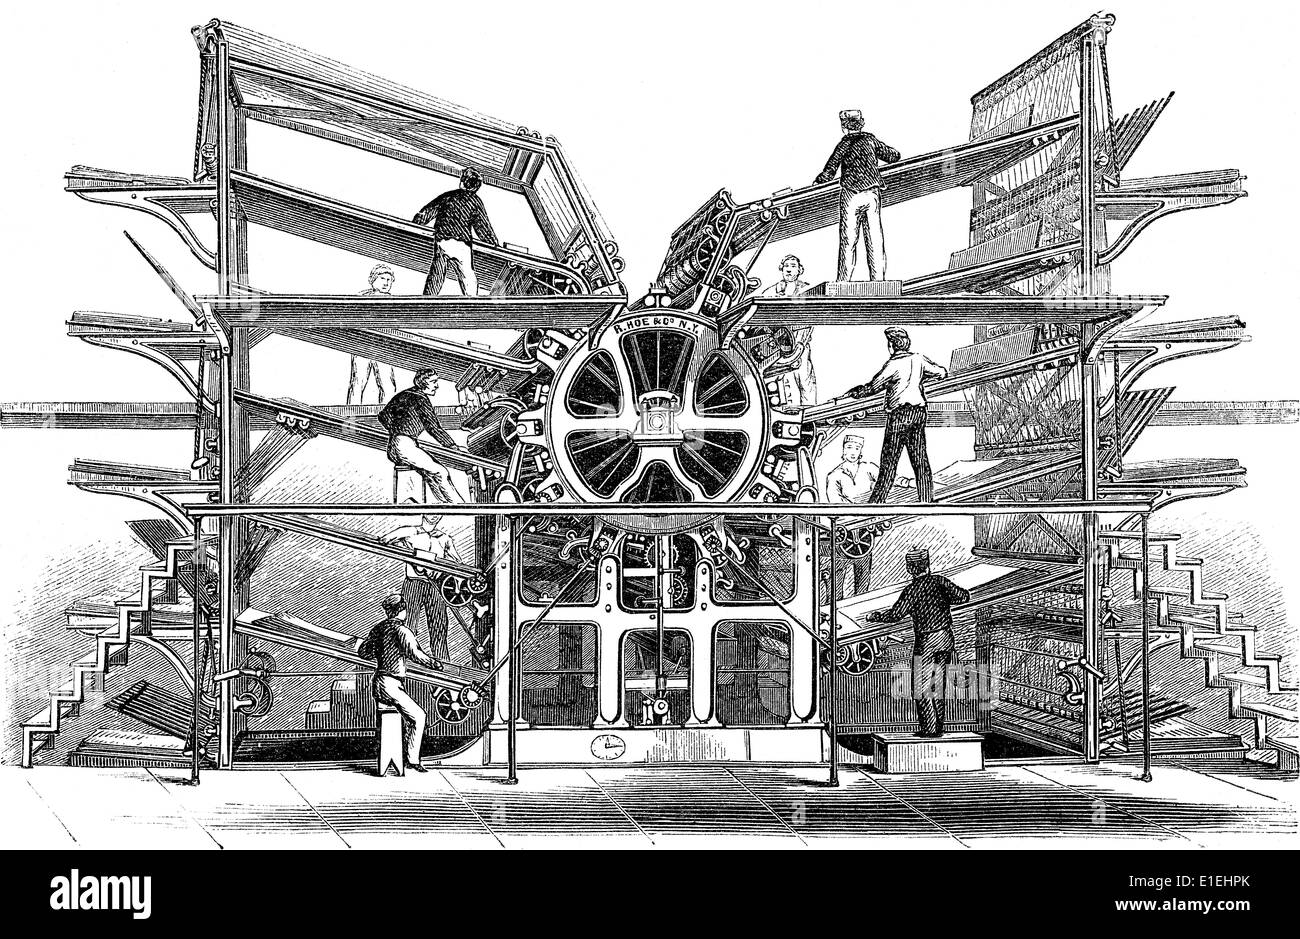 Historical illustration, 19th Century, Hoe's 10-cylinder rotary printing press, - Stock Image